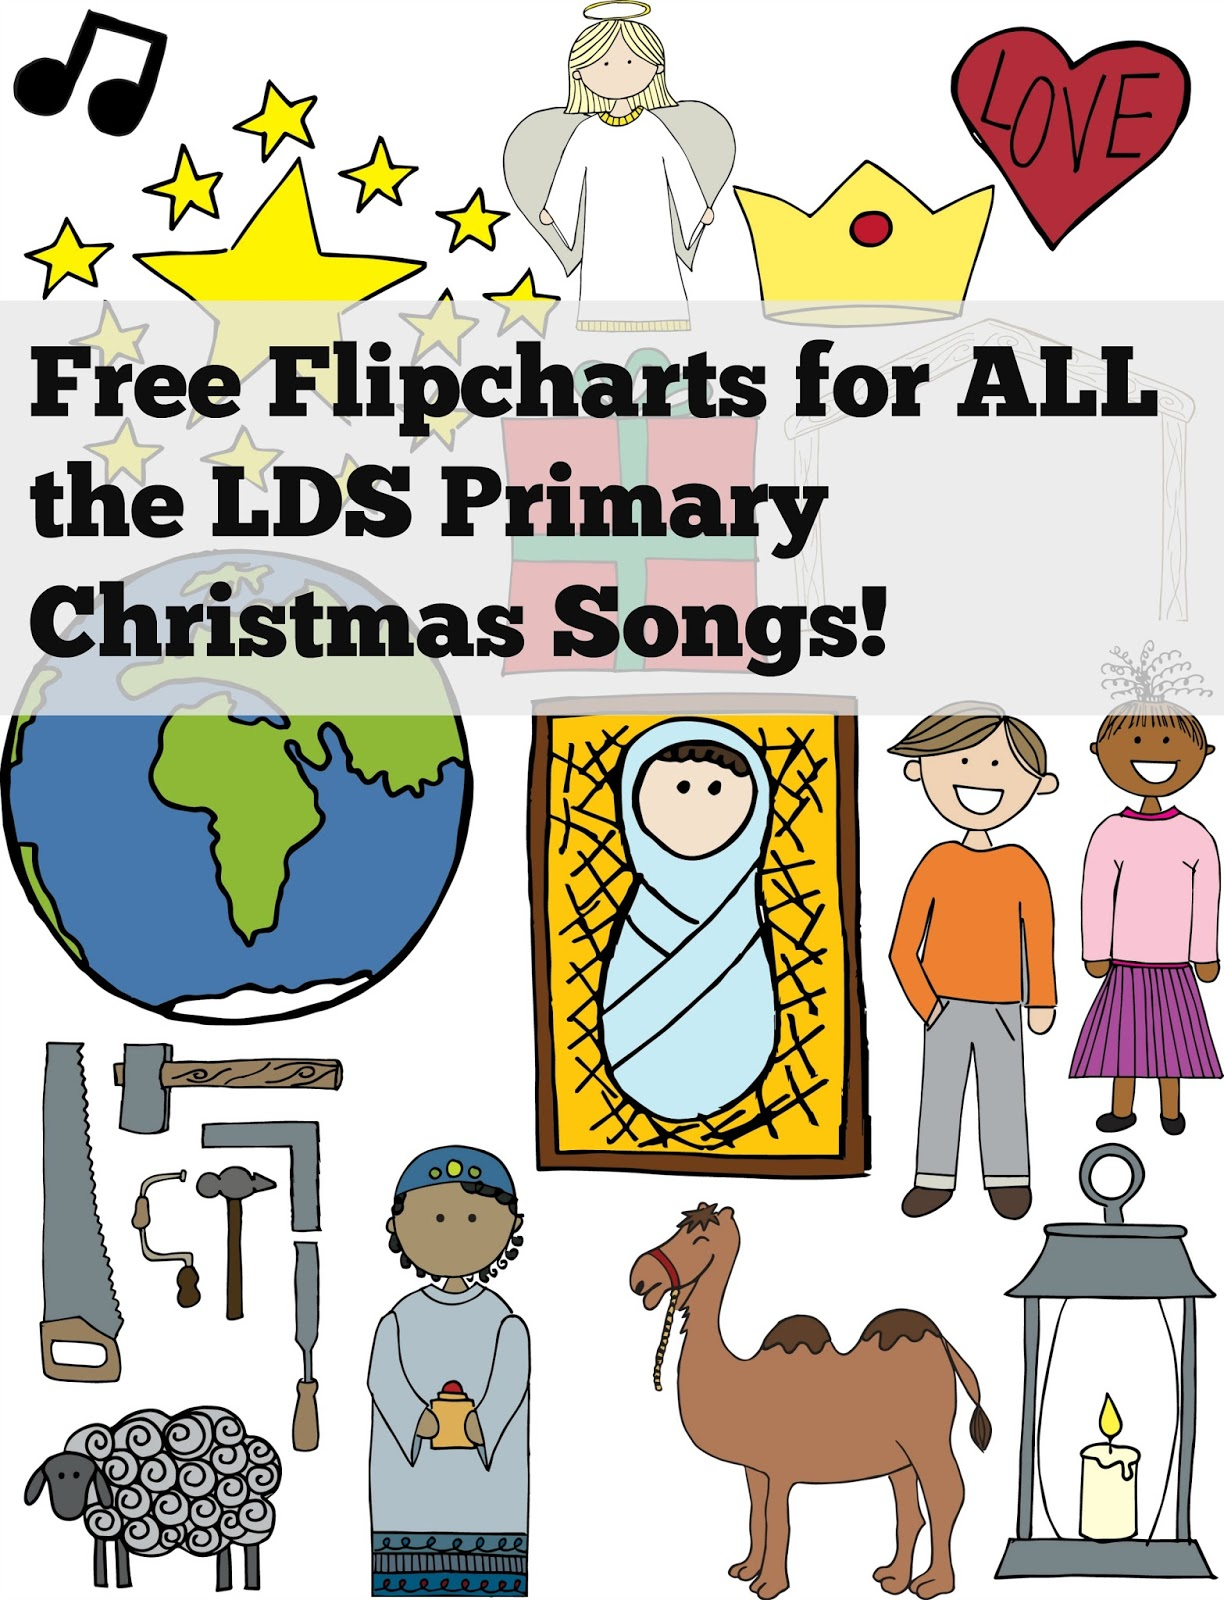 Free coloring pages lds - Free Coloring Page Flipcharts For All The Lds Primary Christmas Songs